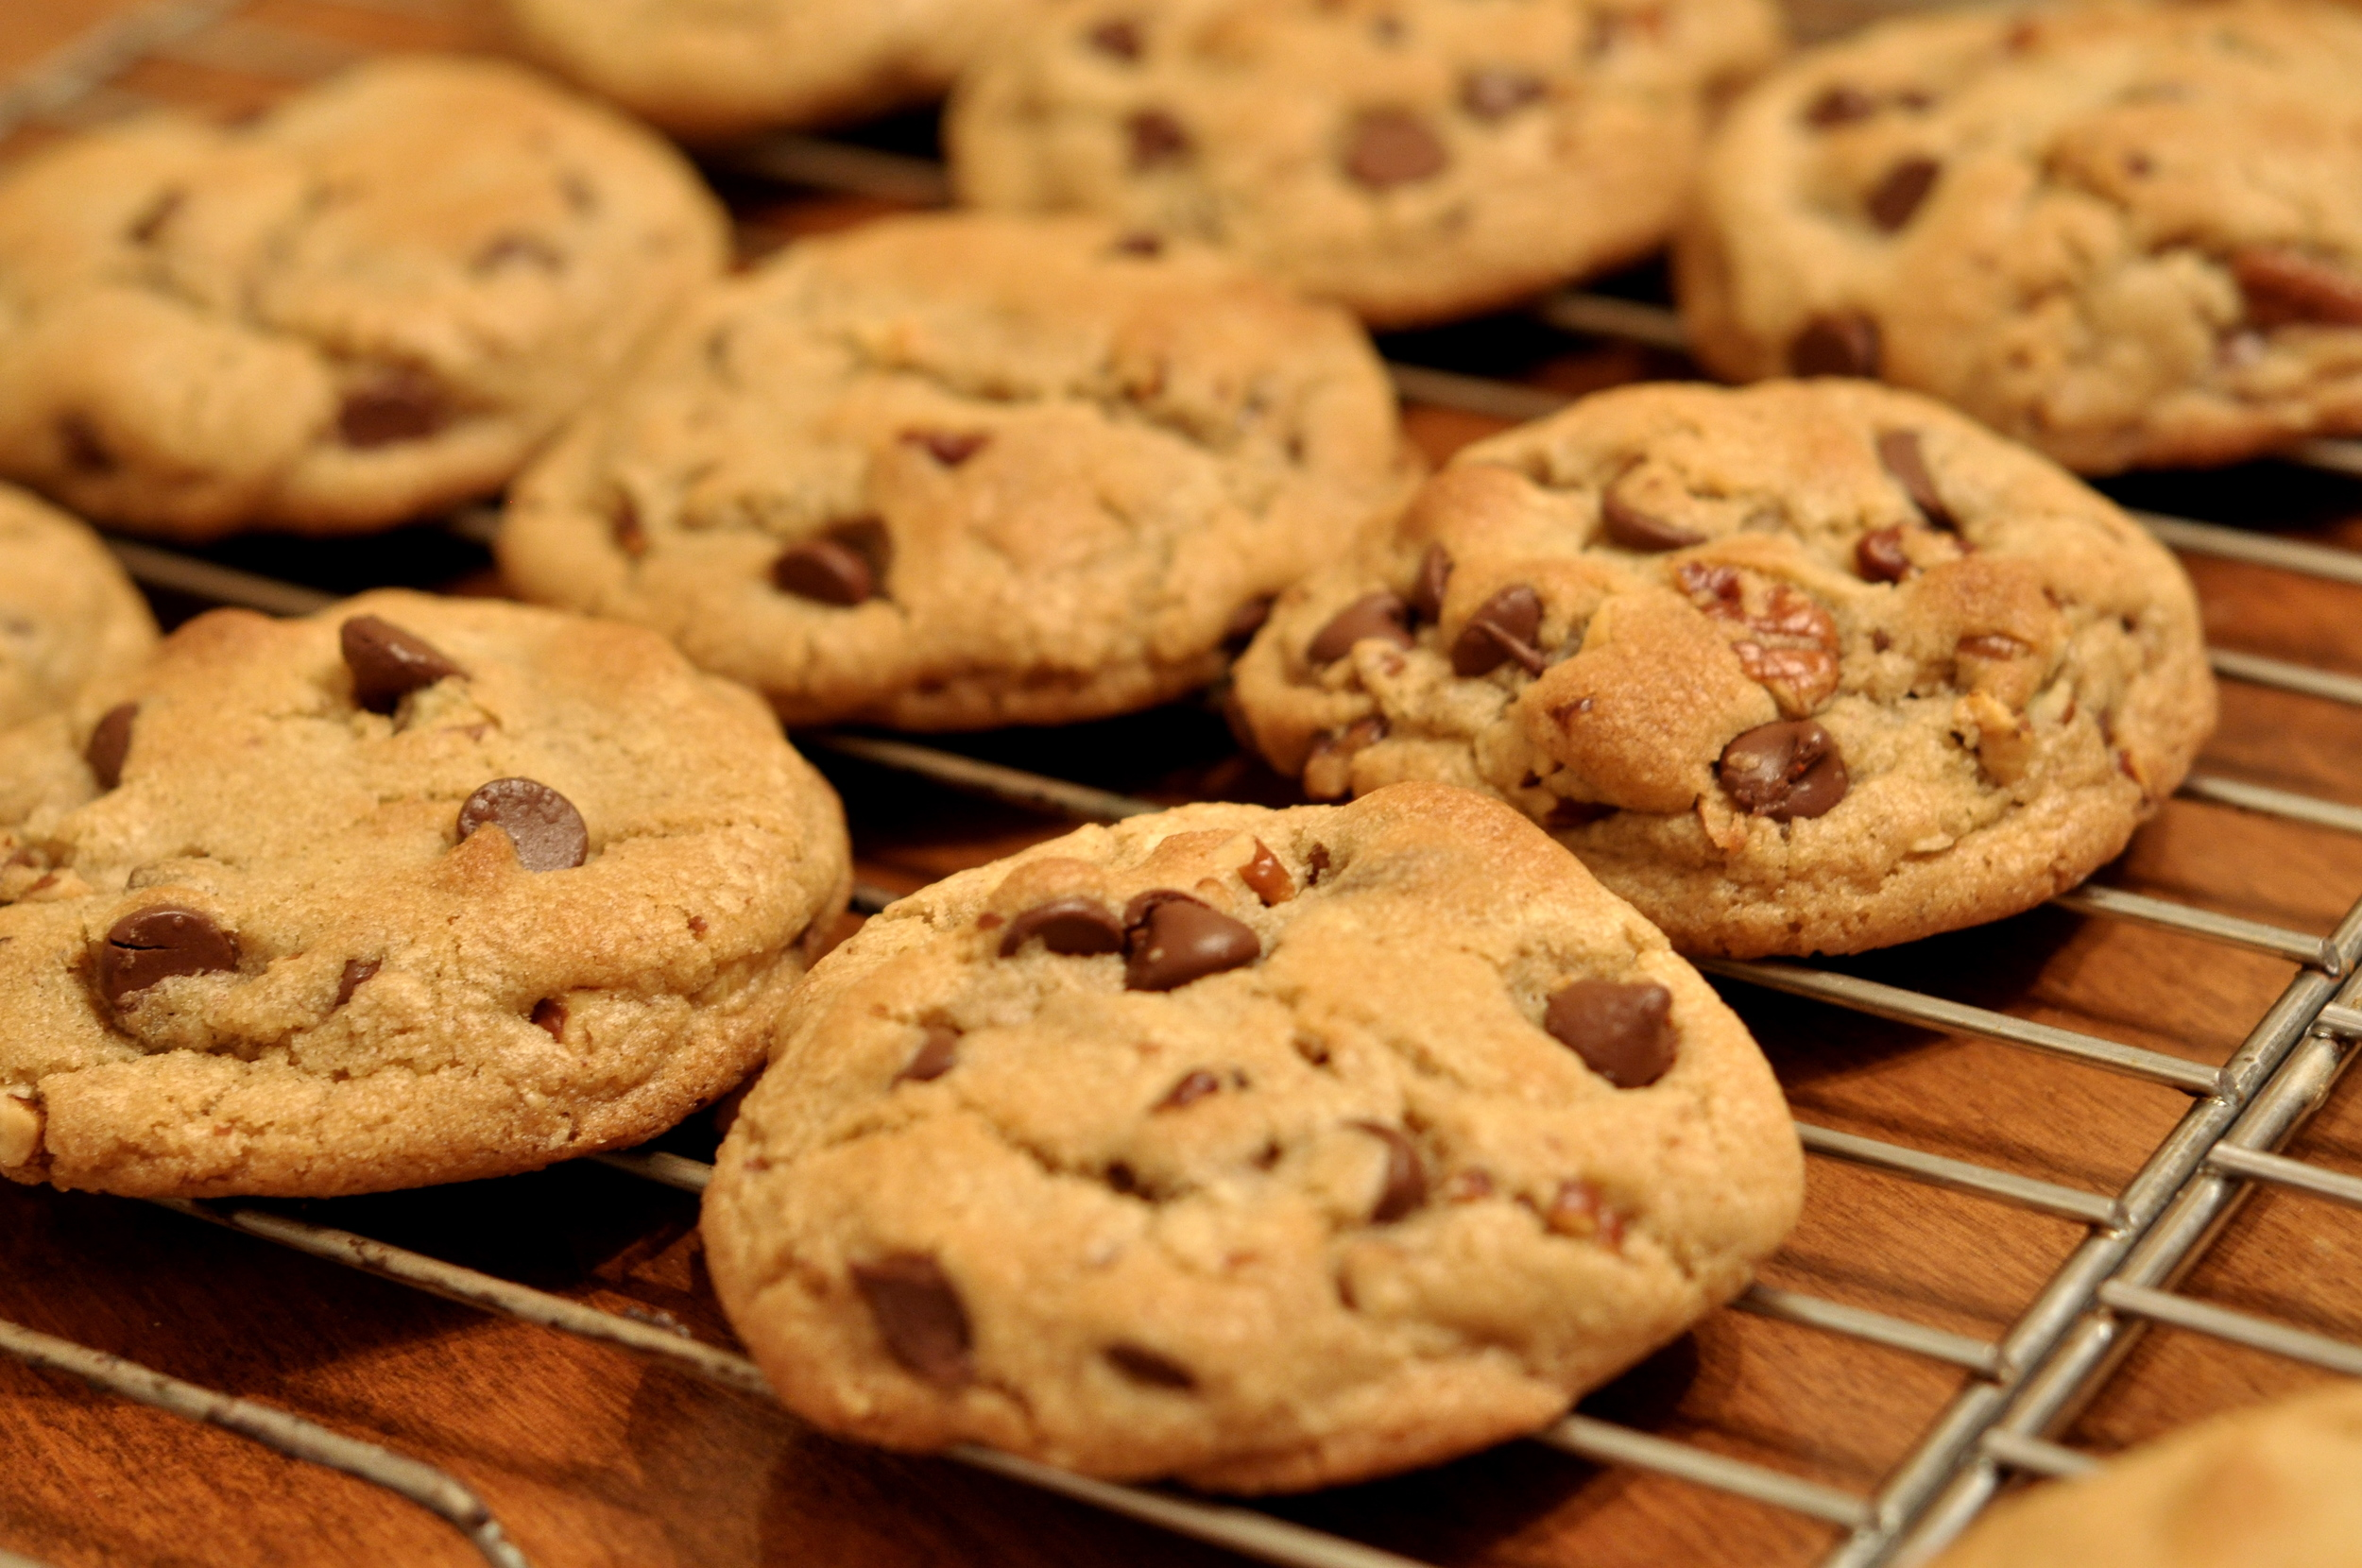 How could I share the taste of a cookie?  Photo Credit: Wikimedia Commons